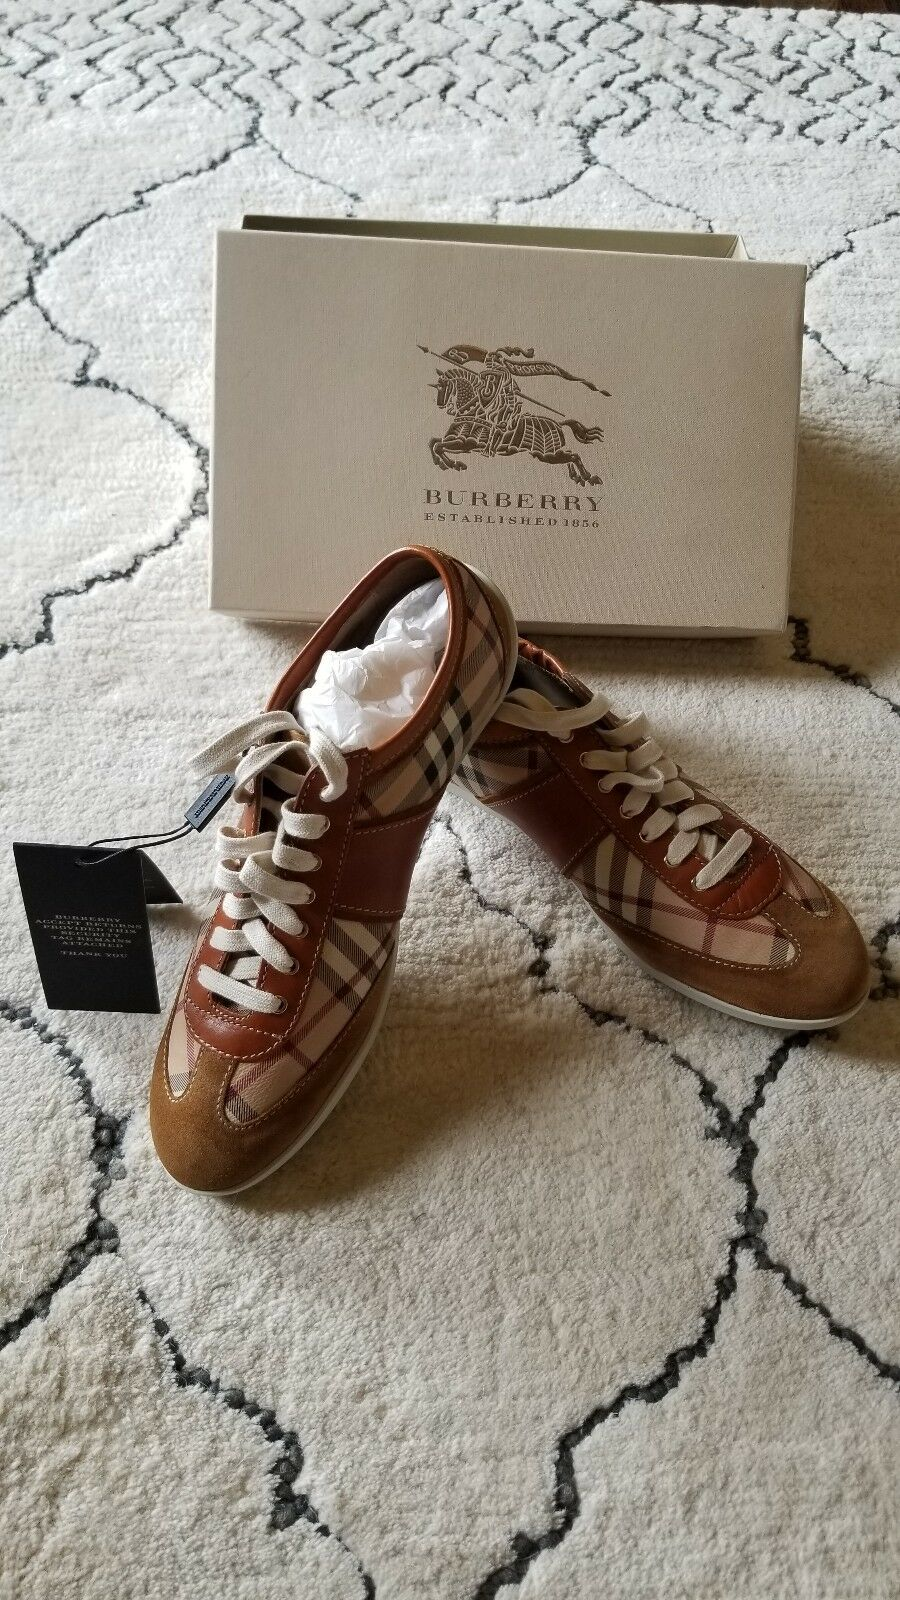 New New New in box  burberry femmes baskets Taille 7 cffbf9